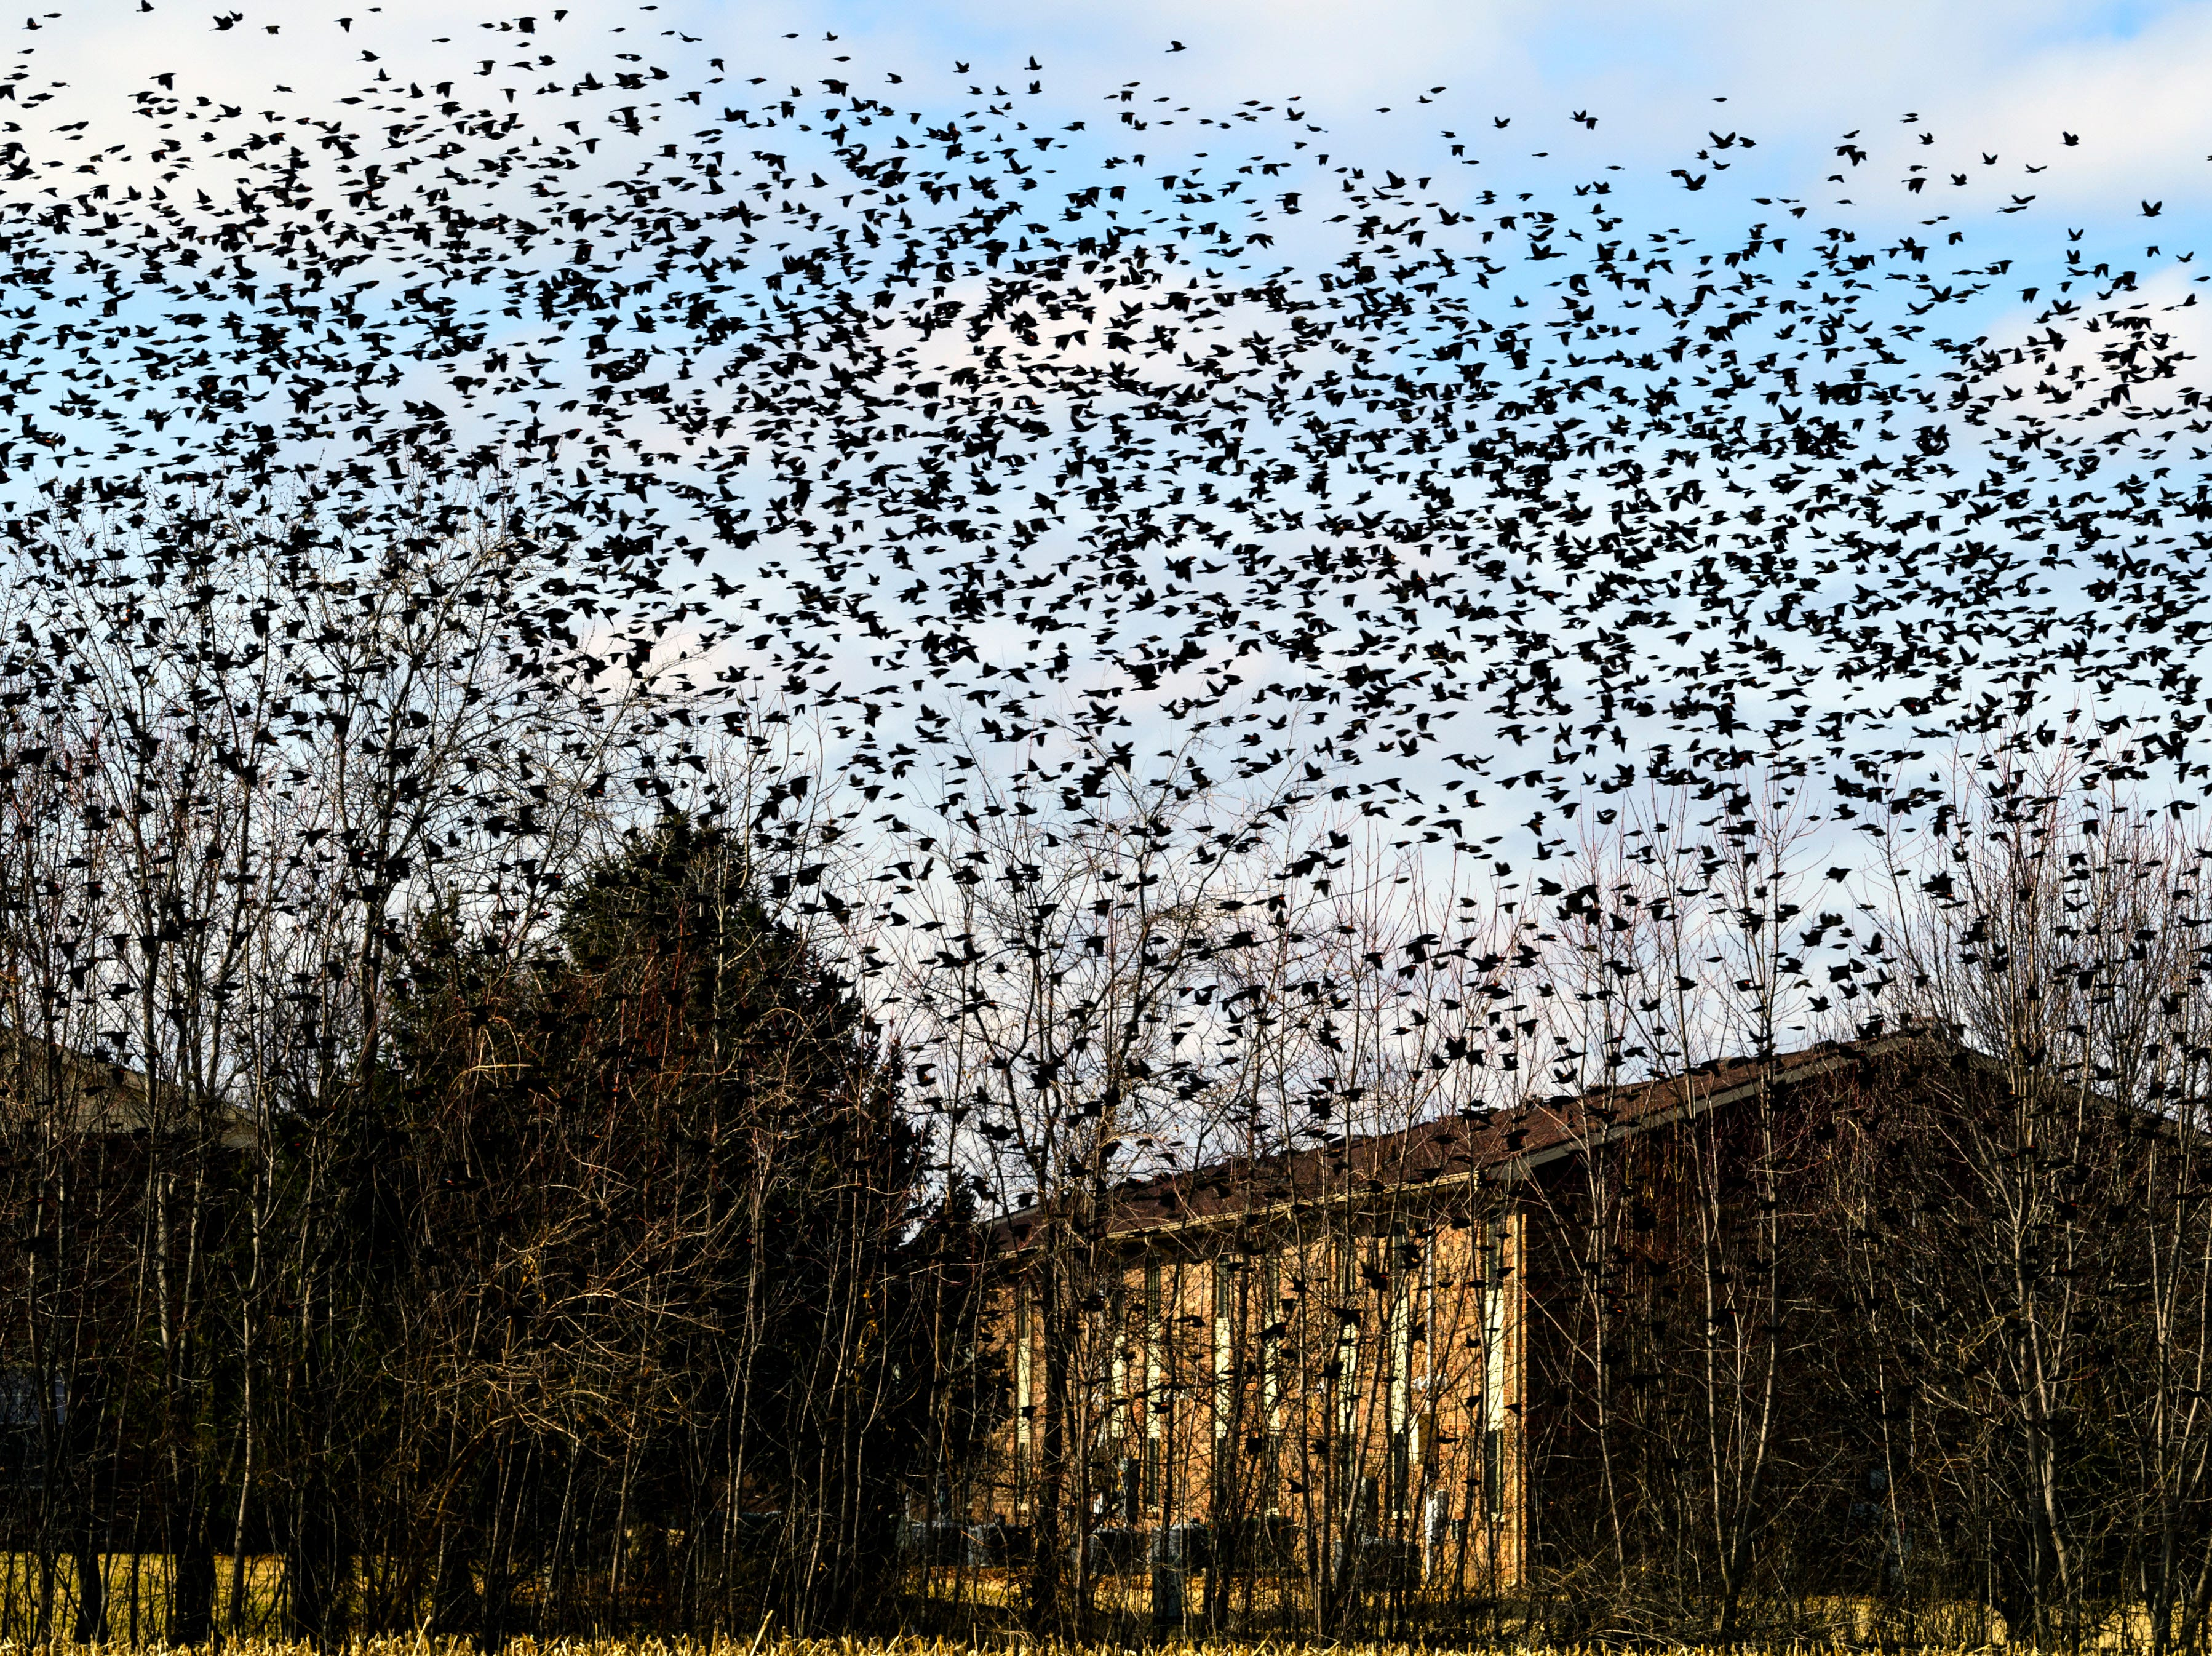 A large flock of birds fly around a field on North Royal Avenue in Evansville, Ind., Monday afternoon, Feb. 5, 2018.